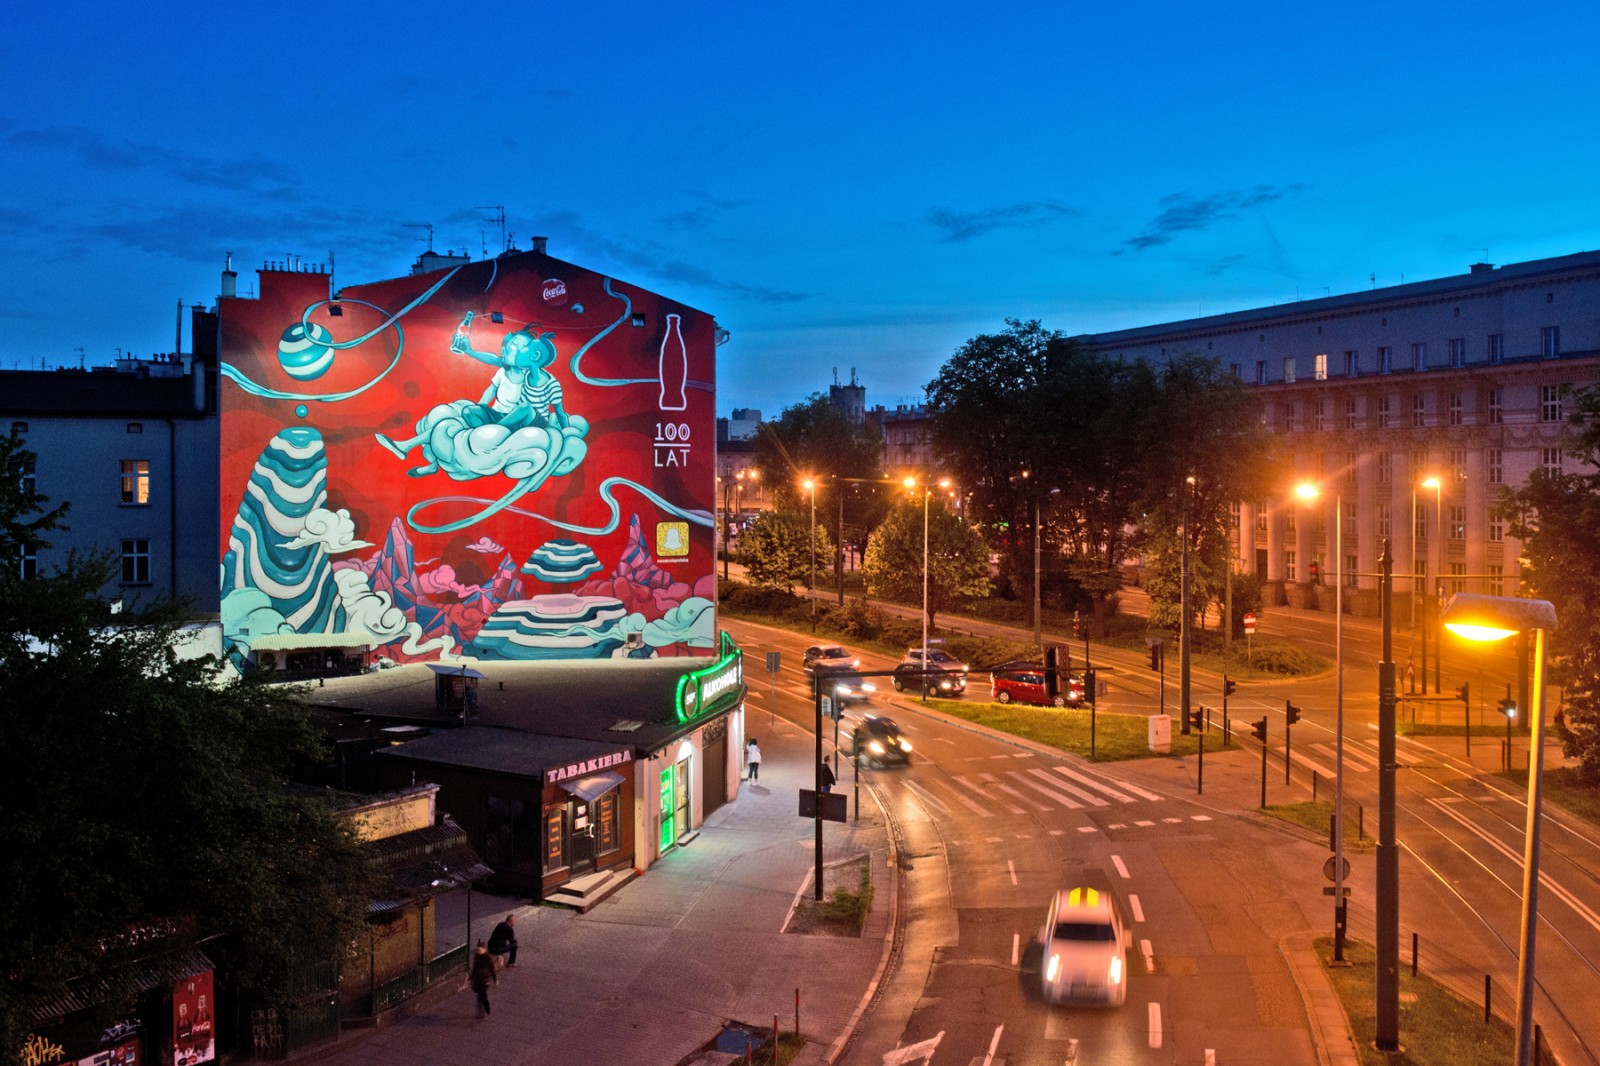 Coca Cola Poland mural in Cracow 100th anniversary of First Kiss | 100 years of Coca-Cola | Portfolio